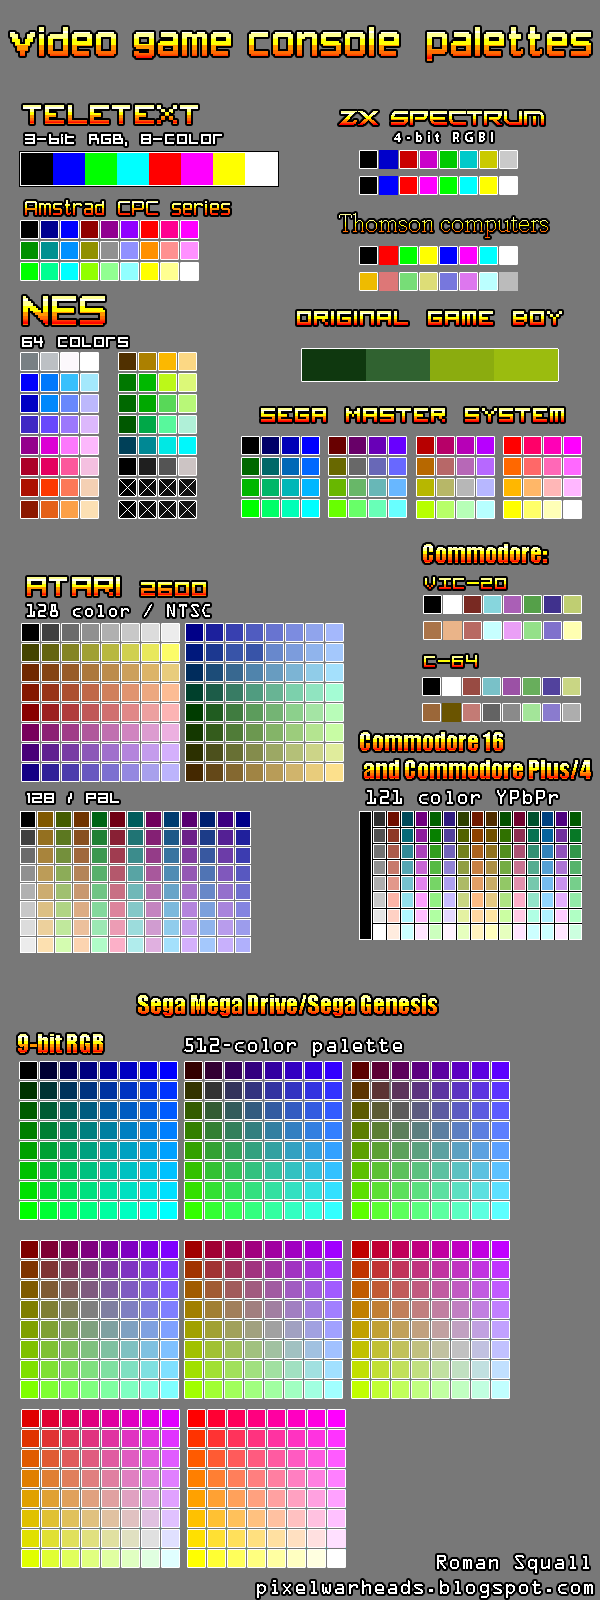 Gameboy color palettes -  Video Game Consoles Palettes By Roman Ss Squall